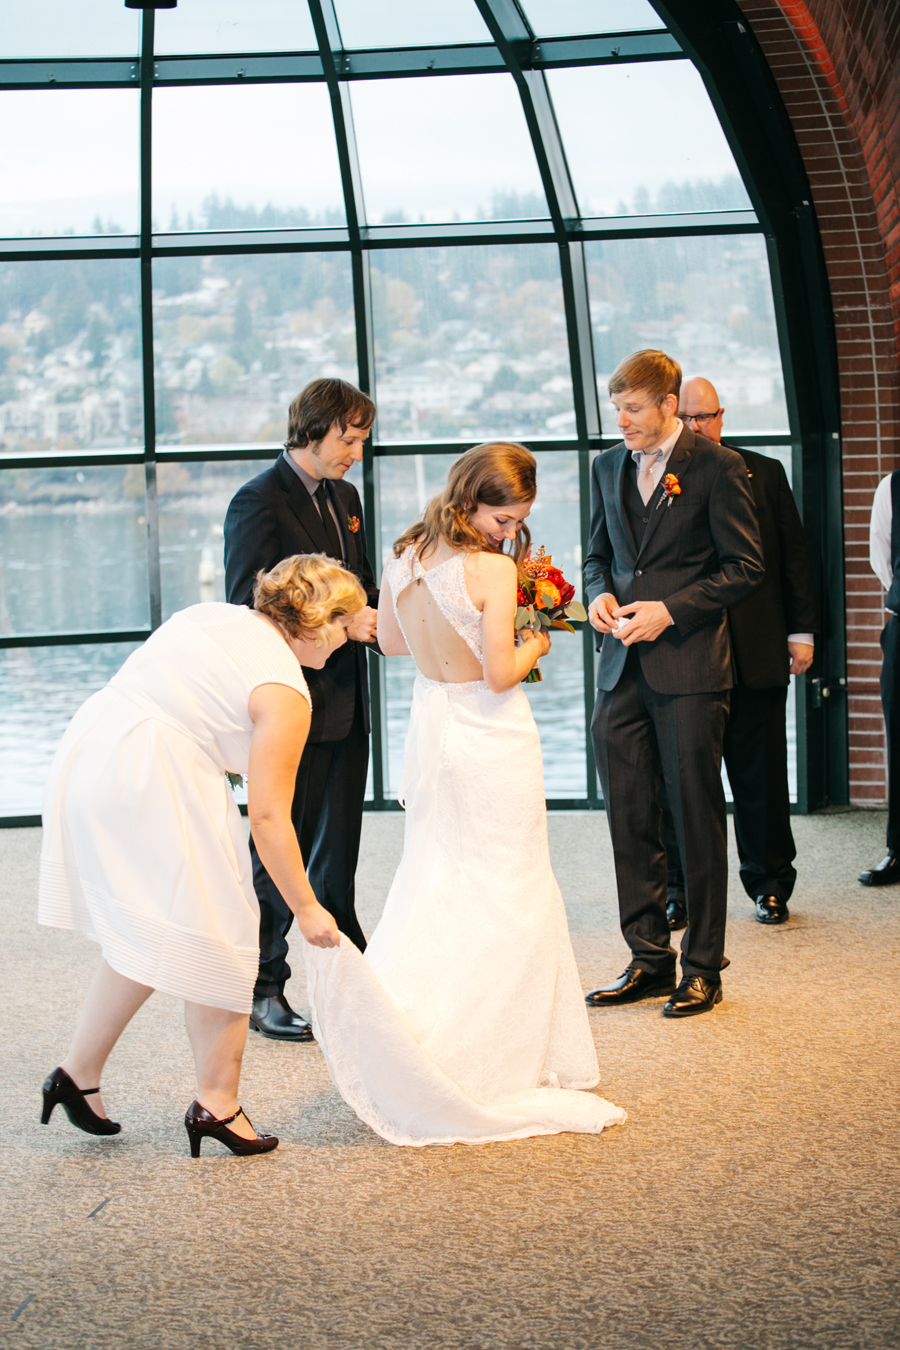 055-bellingham-fairhaven-wedding-photographer-bellingham-ferry-terminal-katheryn-moran-photography.jpg